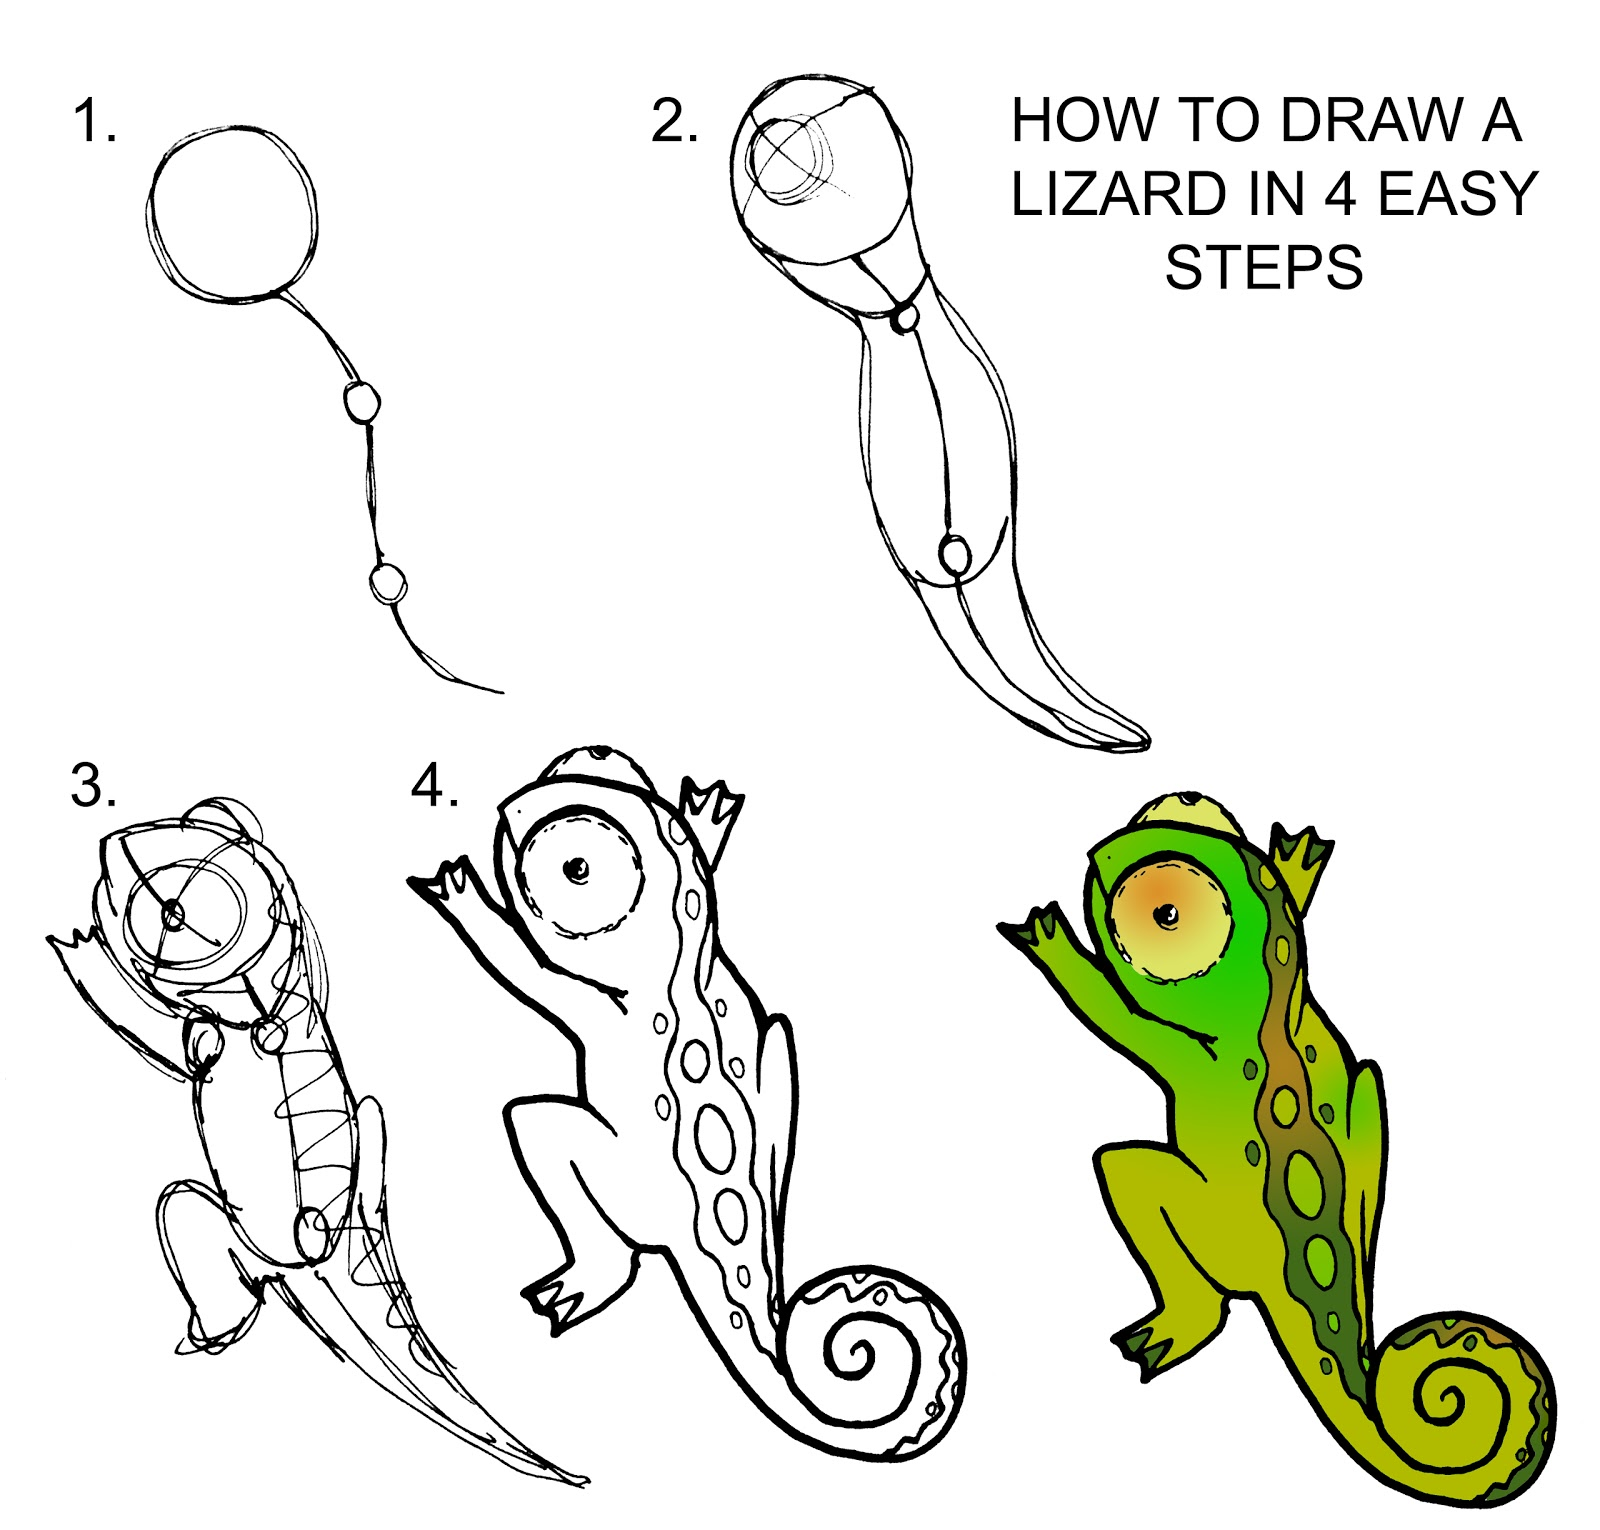 Daryl Hobson Artwork How To Draw A Lizard Step By Step